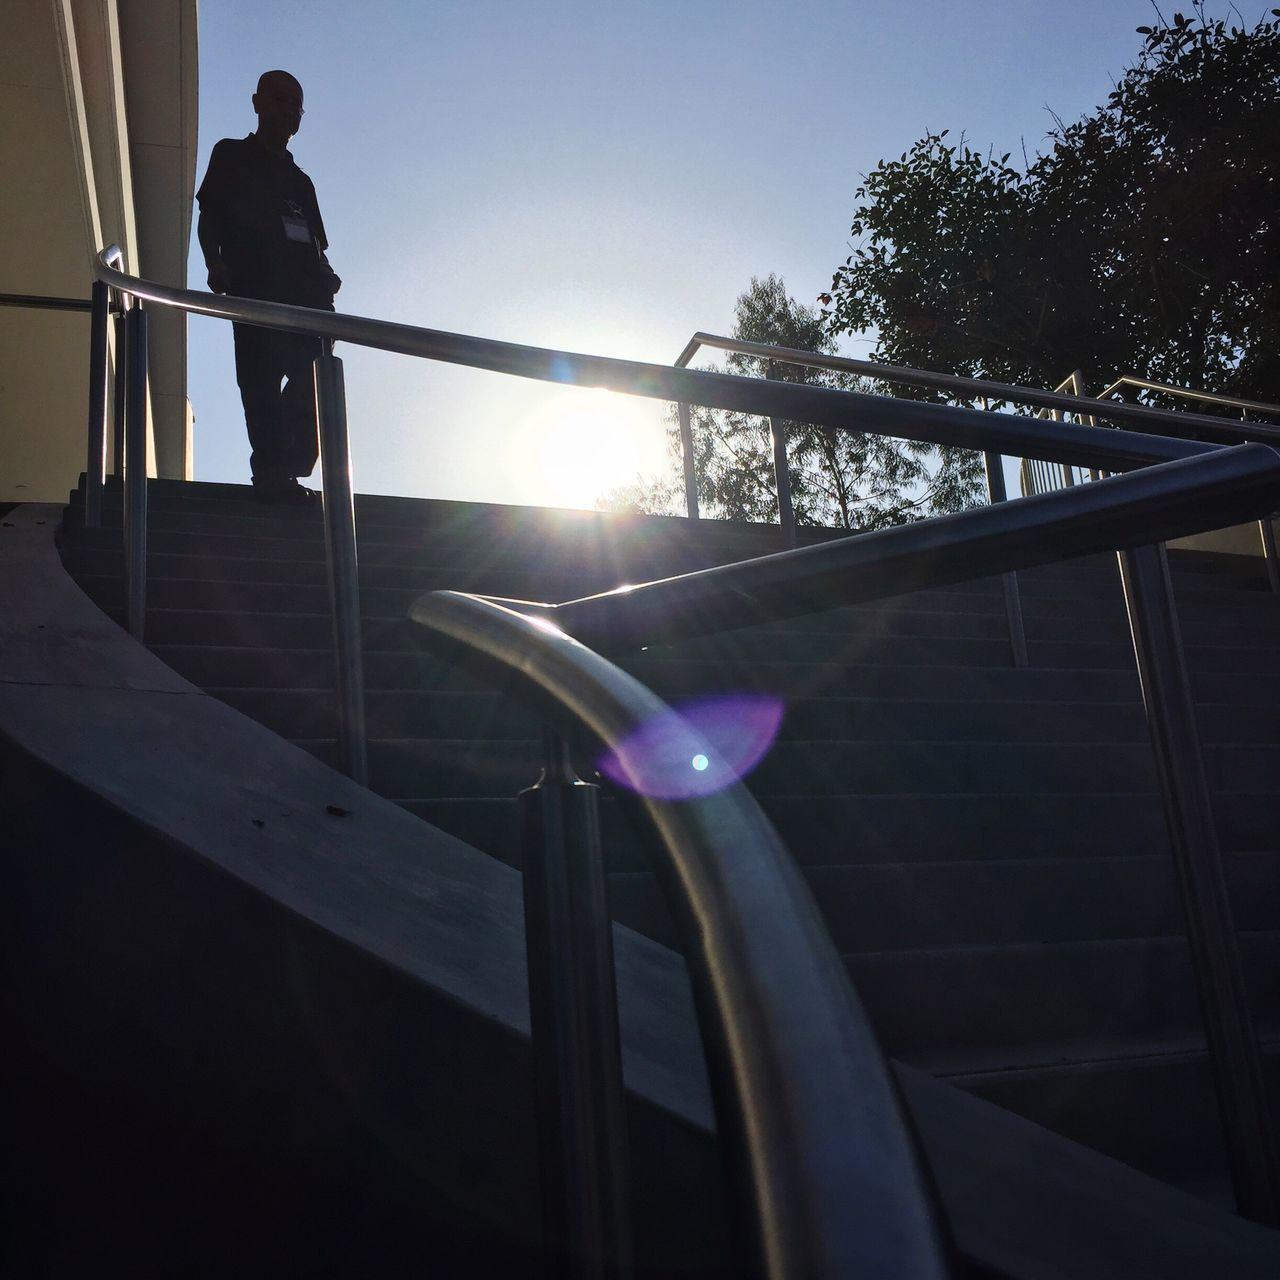 Waiting Game Silhouette of a man on top of a staircase. Real People Low Angle View One Person Sunbeam Sun Men Day Outdoors Silhouette Standing Lens Flare Sunny Trees Blue Sky People Stairs Building Railing Flare Sunlight Adult